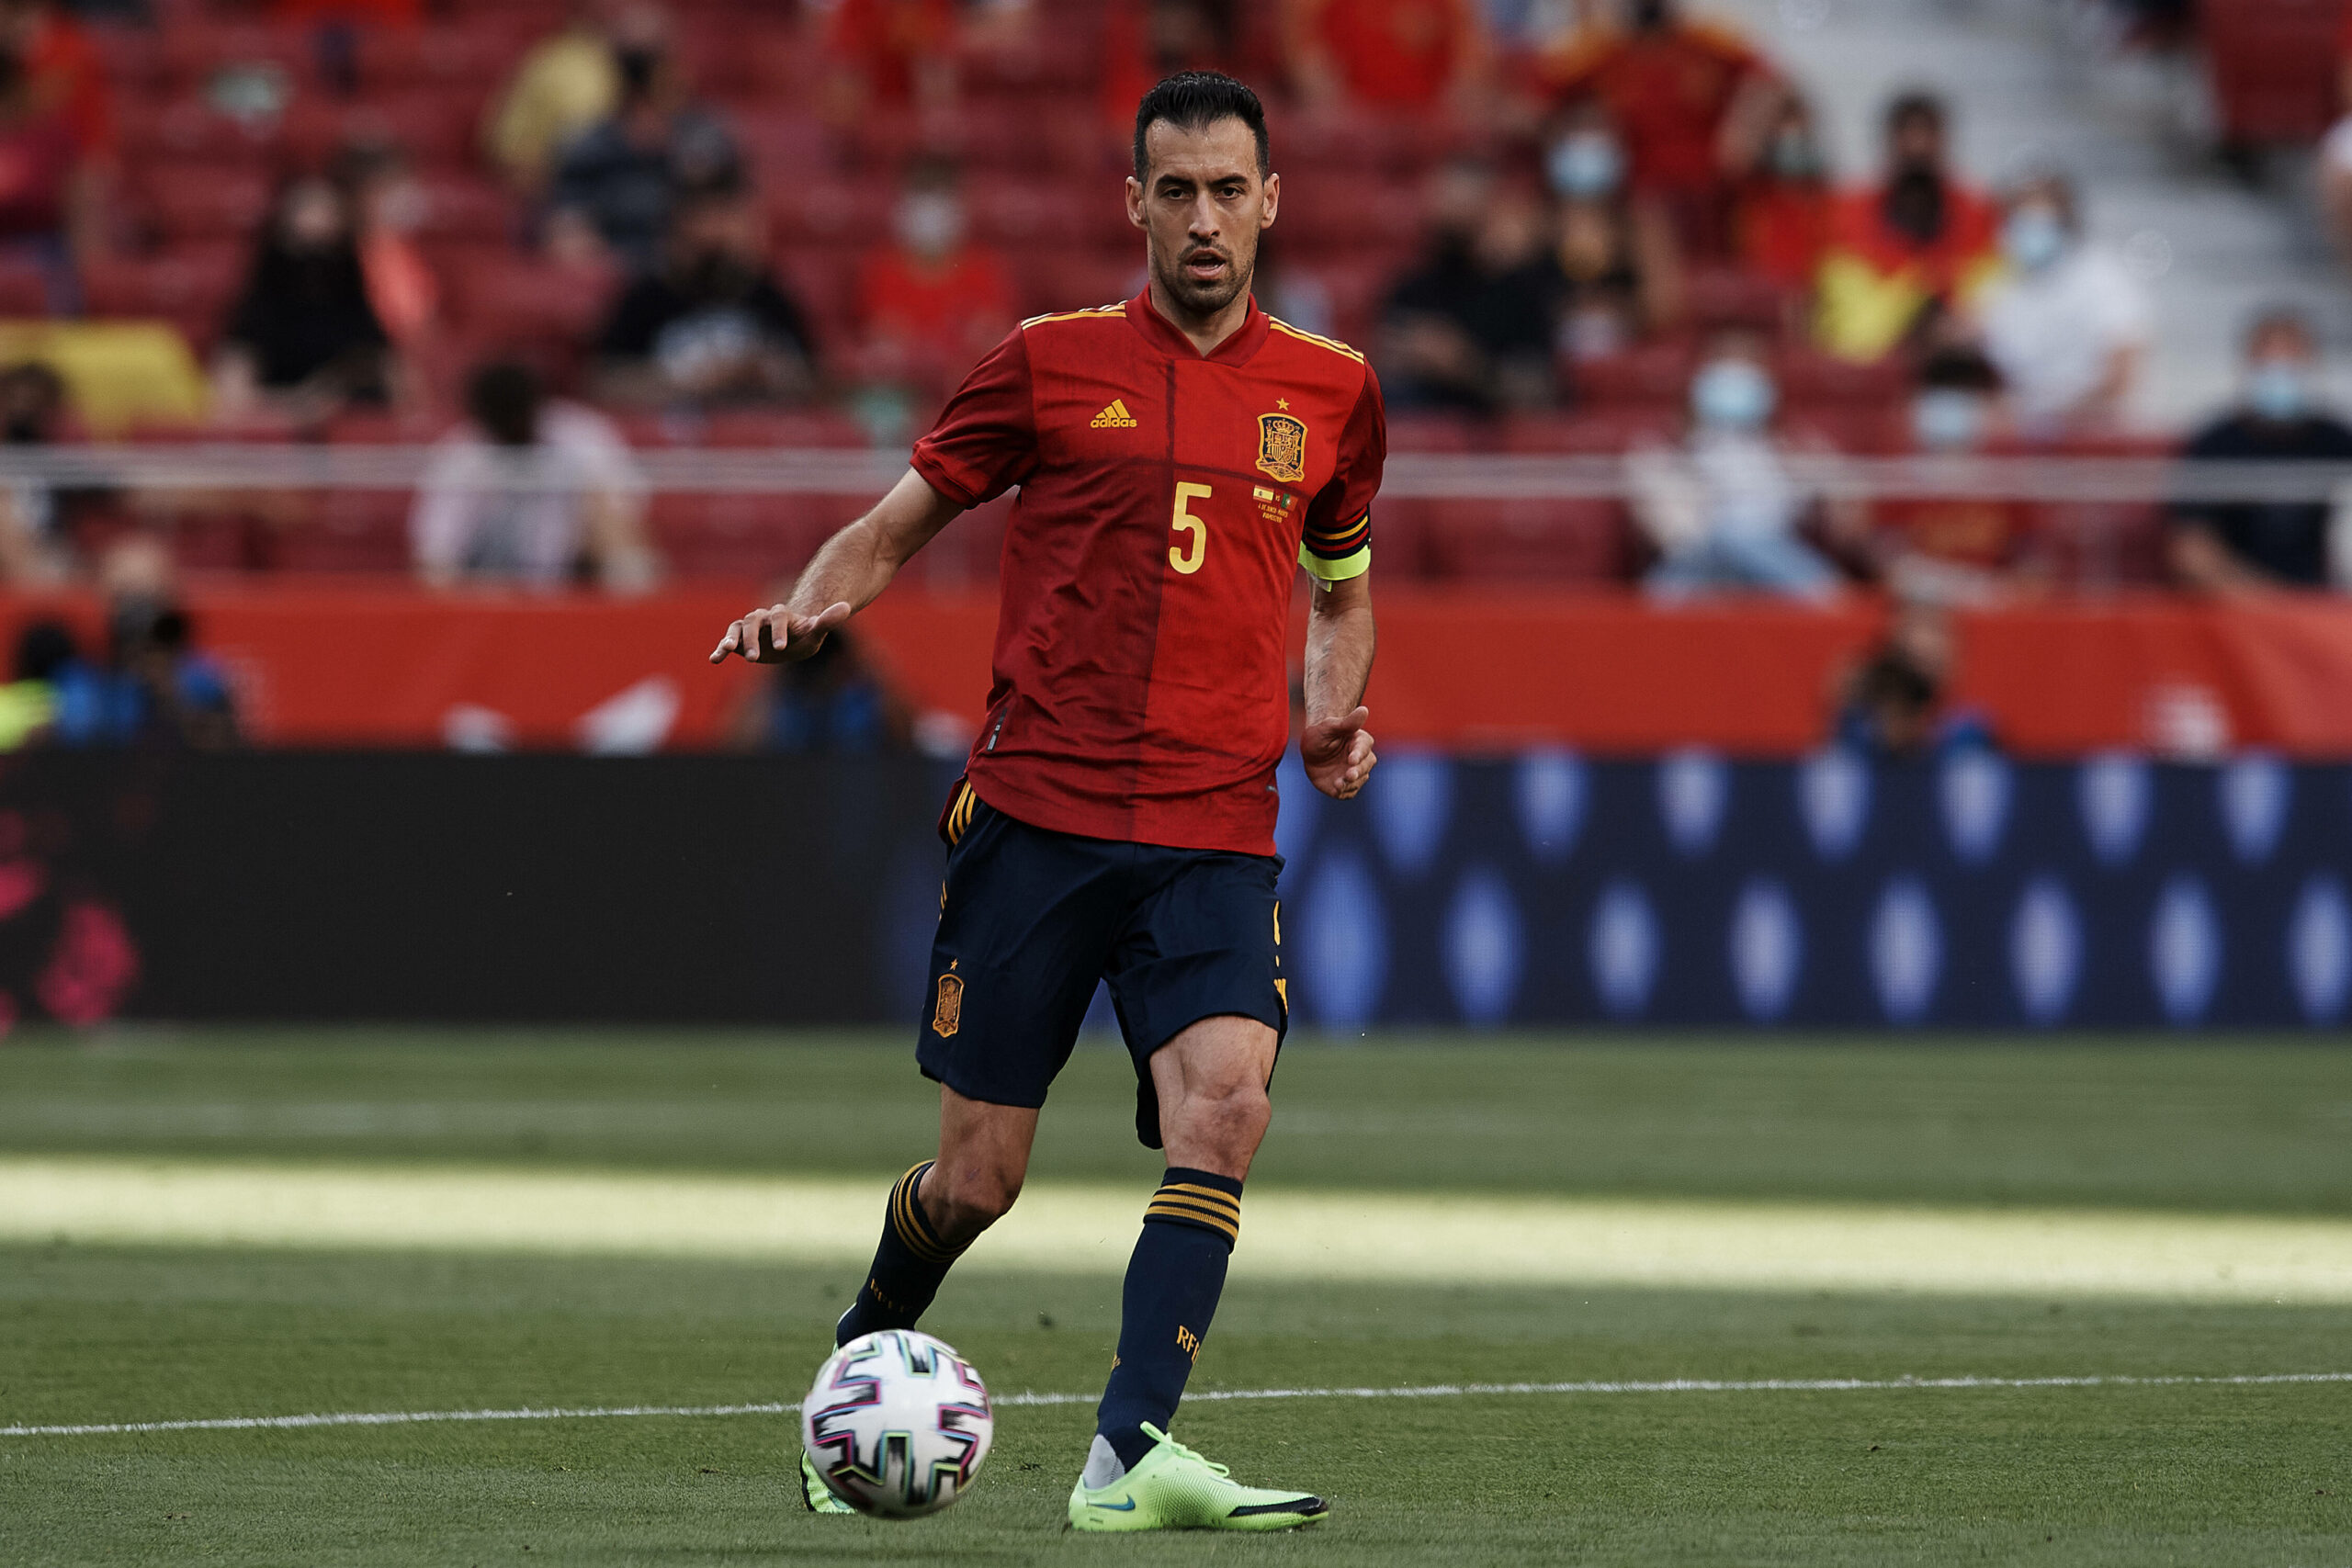 Spain: The Ultimate Euro 2020 Preview